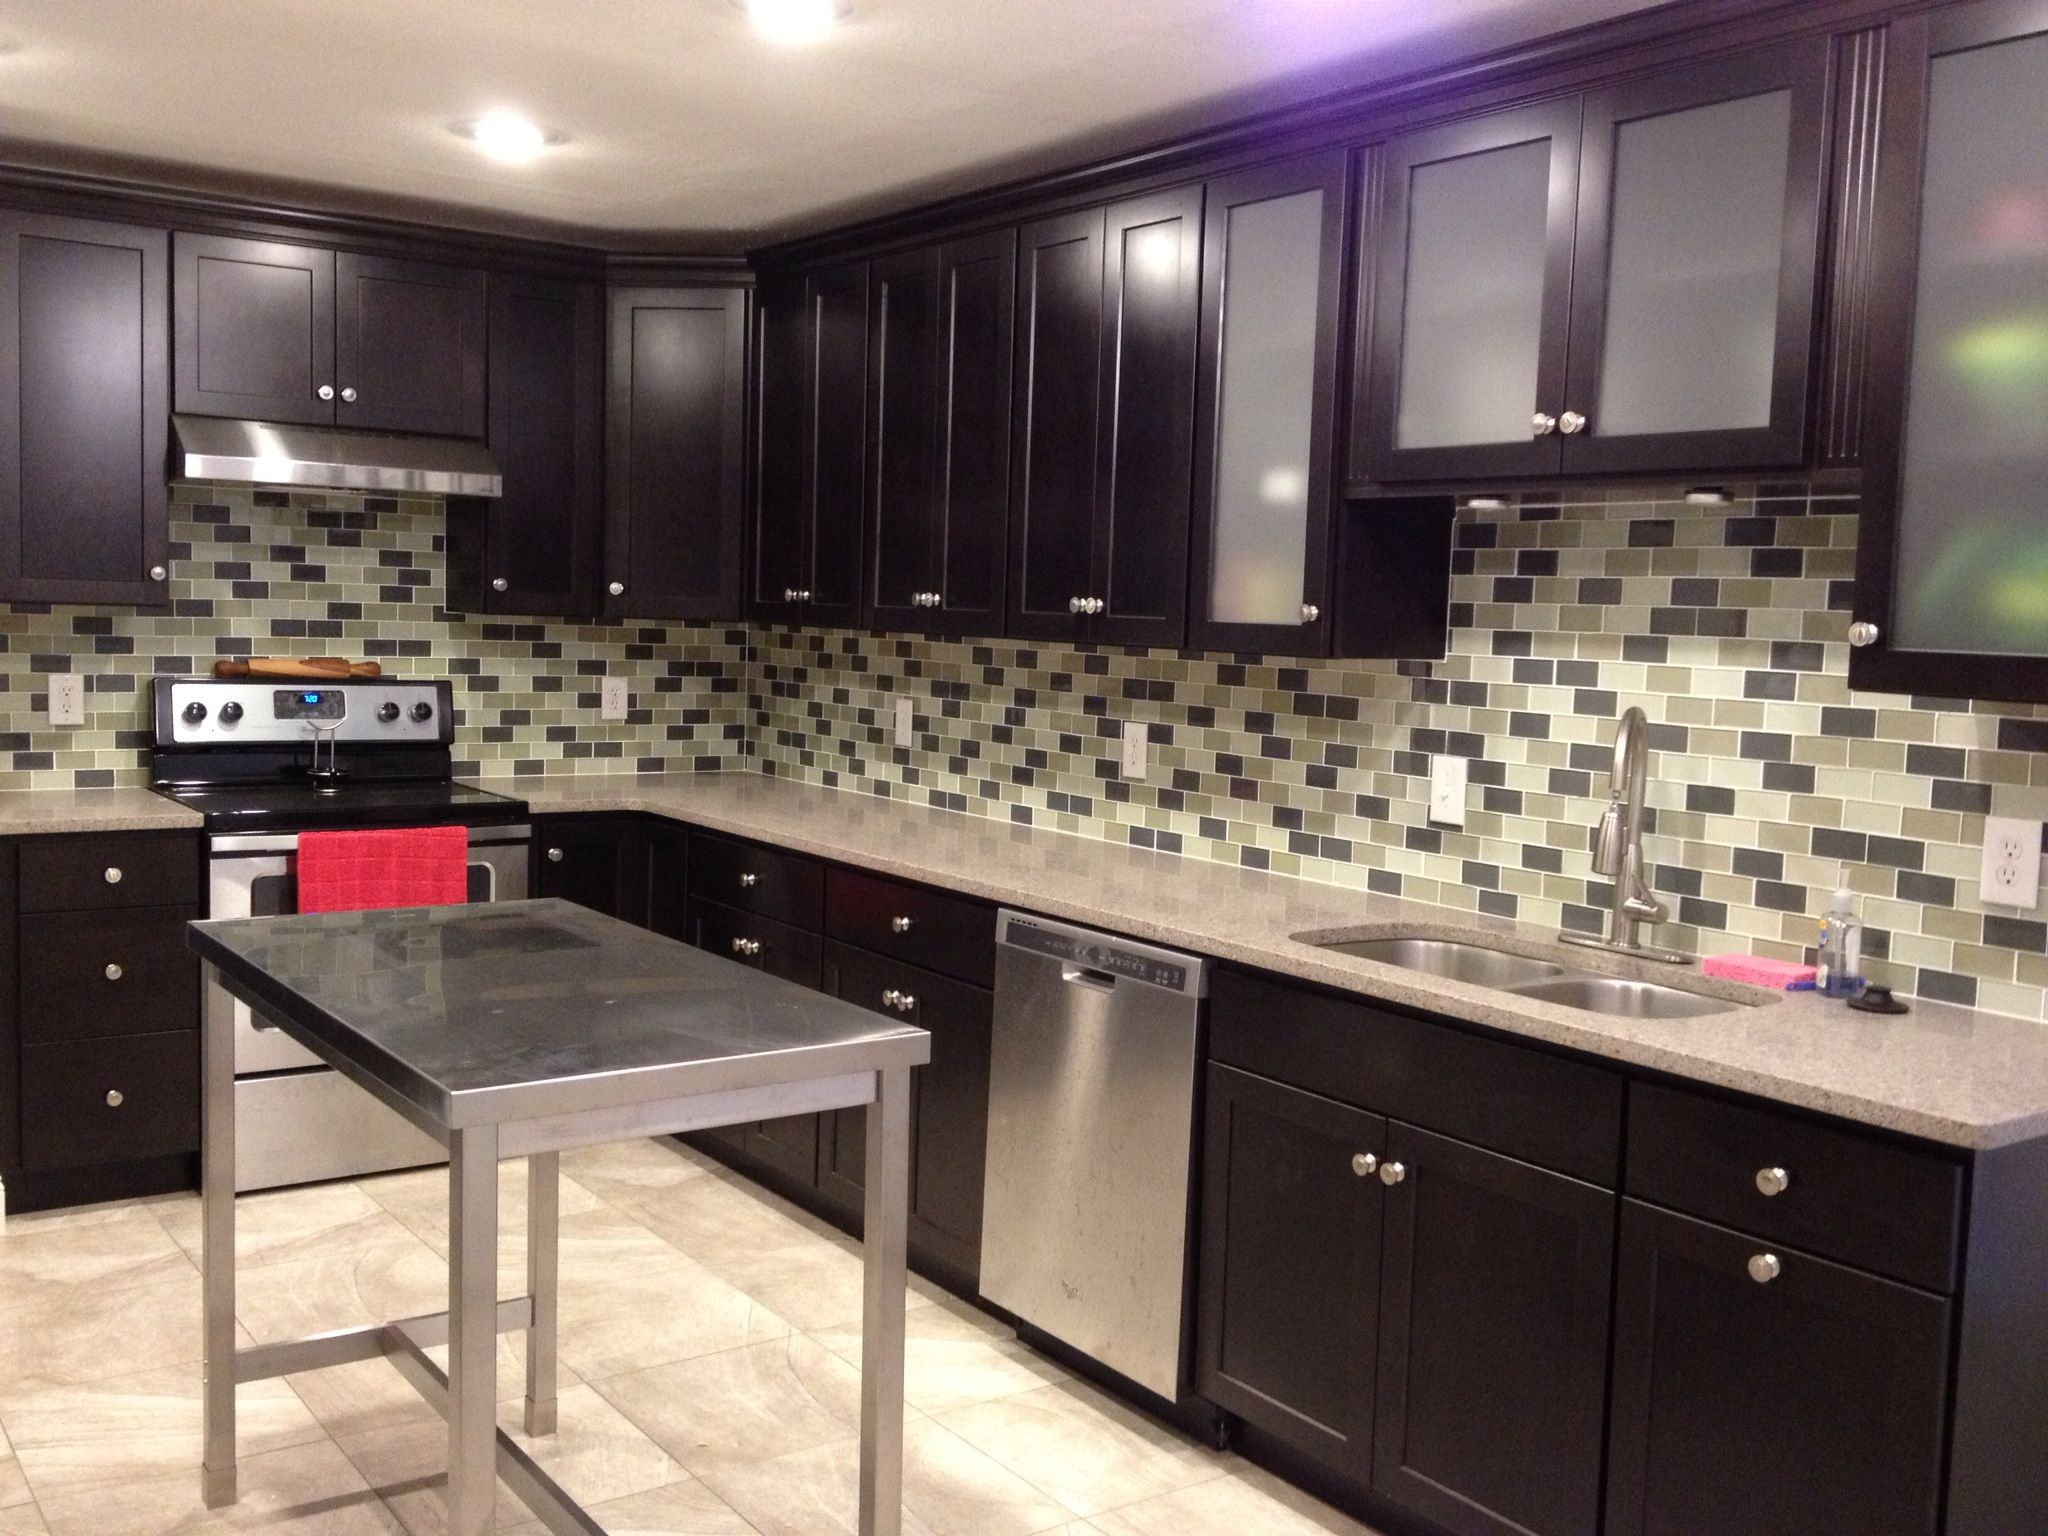 Java kitchen cabinets with subway tile backsplash and stainless ...